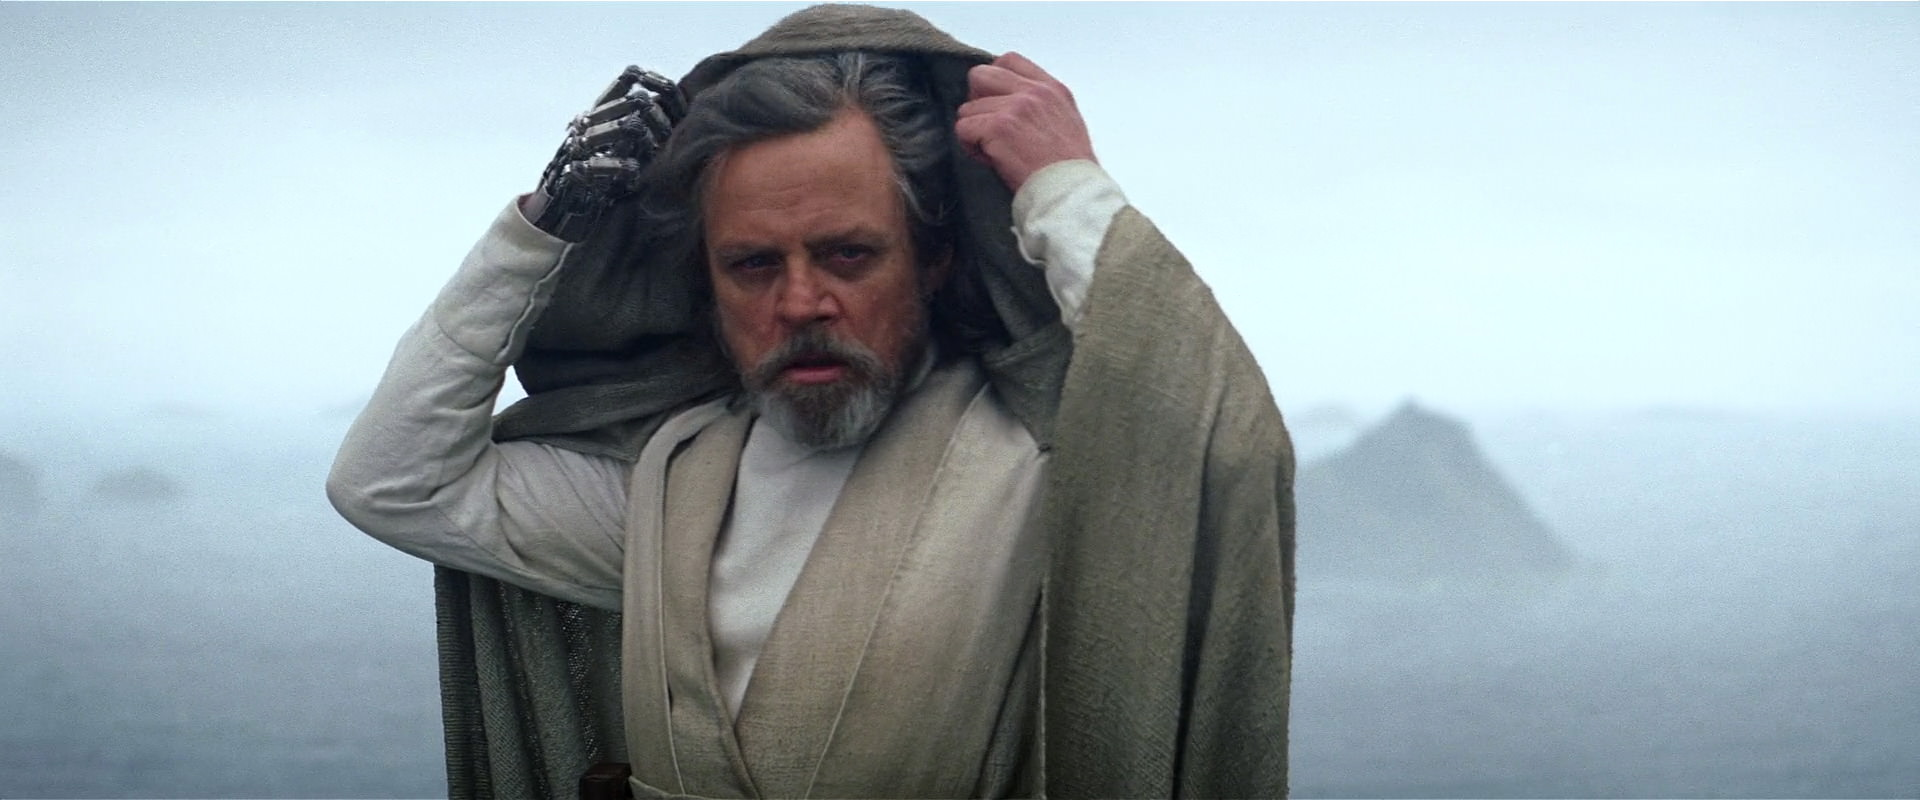 Star Wars: Episode 8 will focus on what's happening with Luke, director says